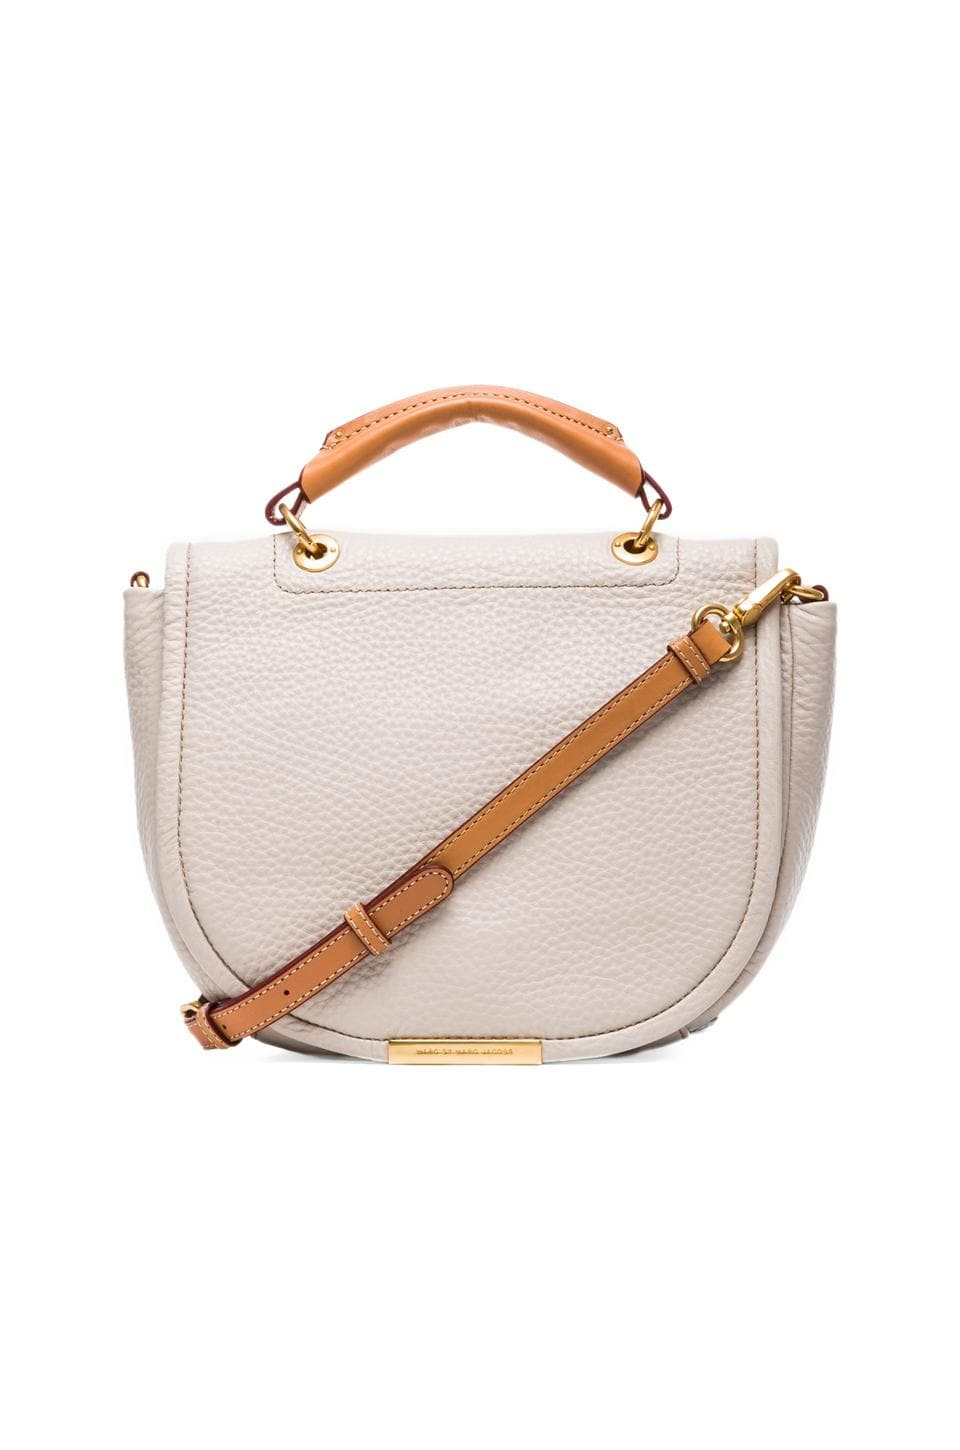 Marc by Marc Jacobs Softy Saddle Top Handle Bag in Papyrus